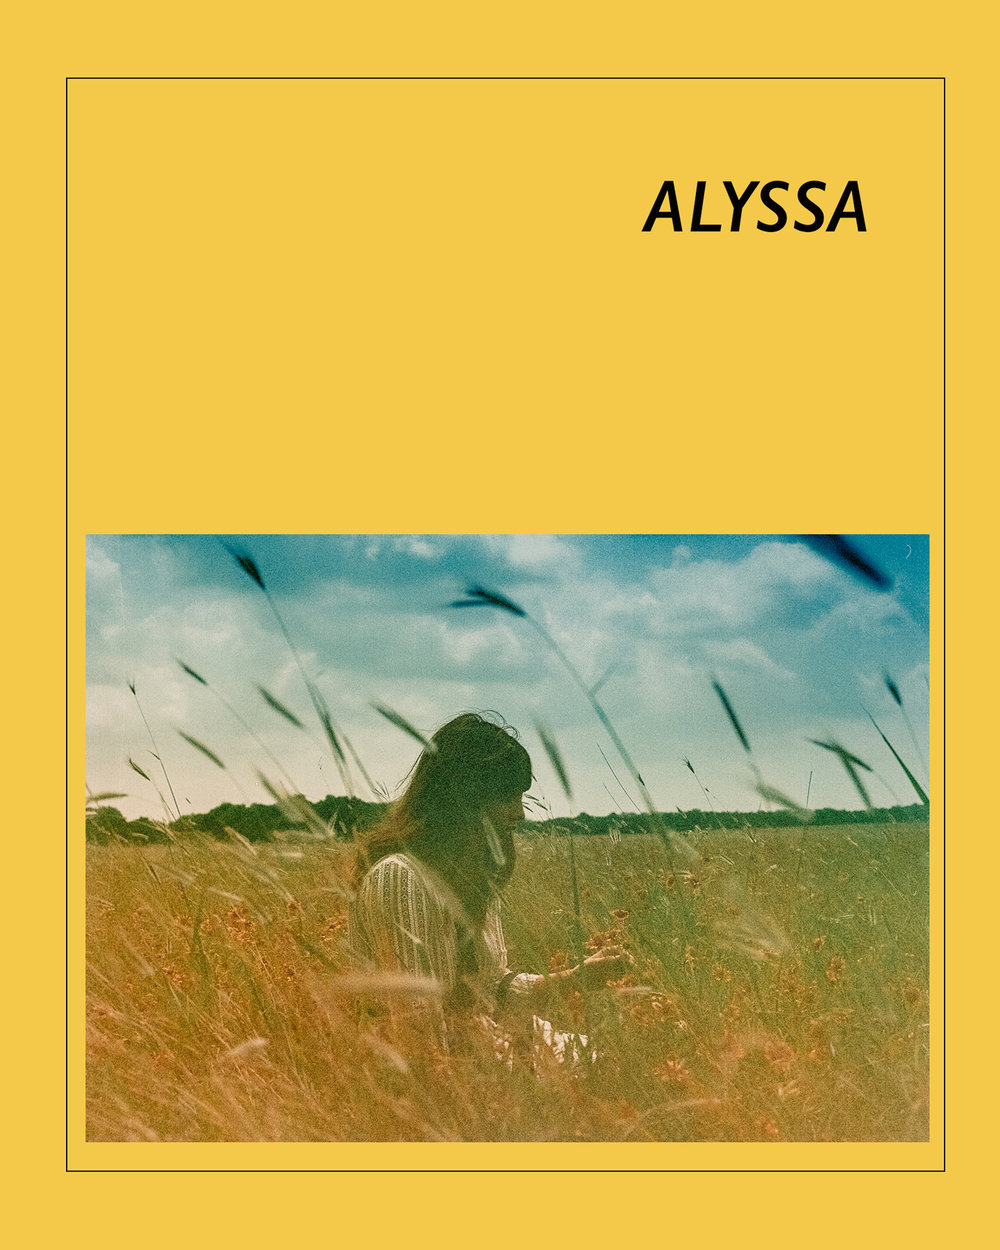 alyssa_yellow_background_3-2.jpg